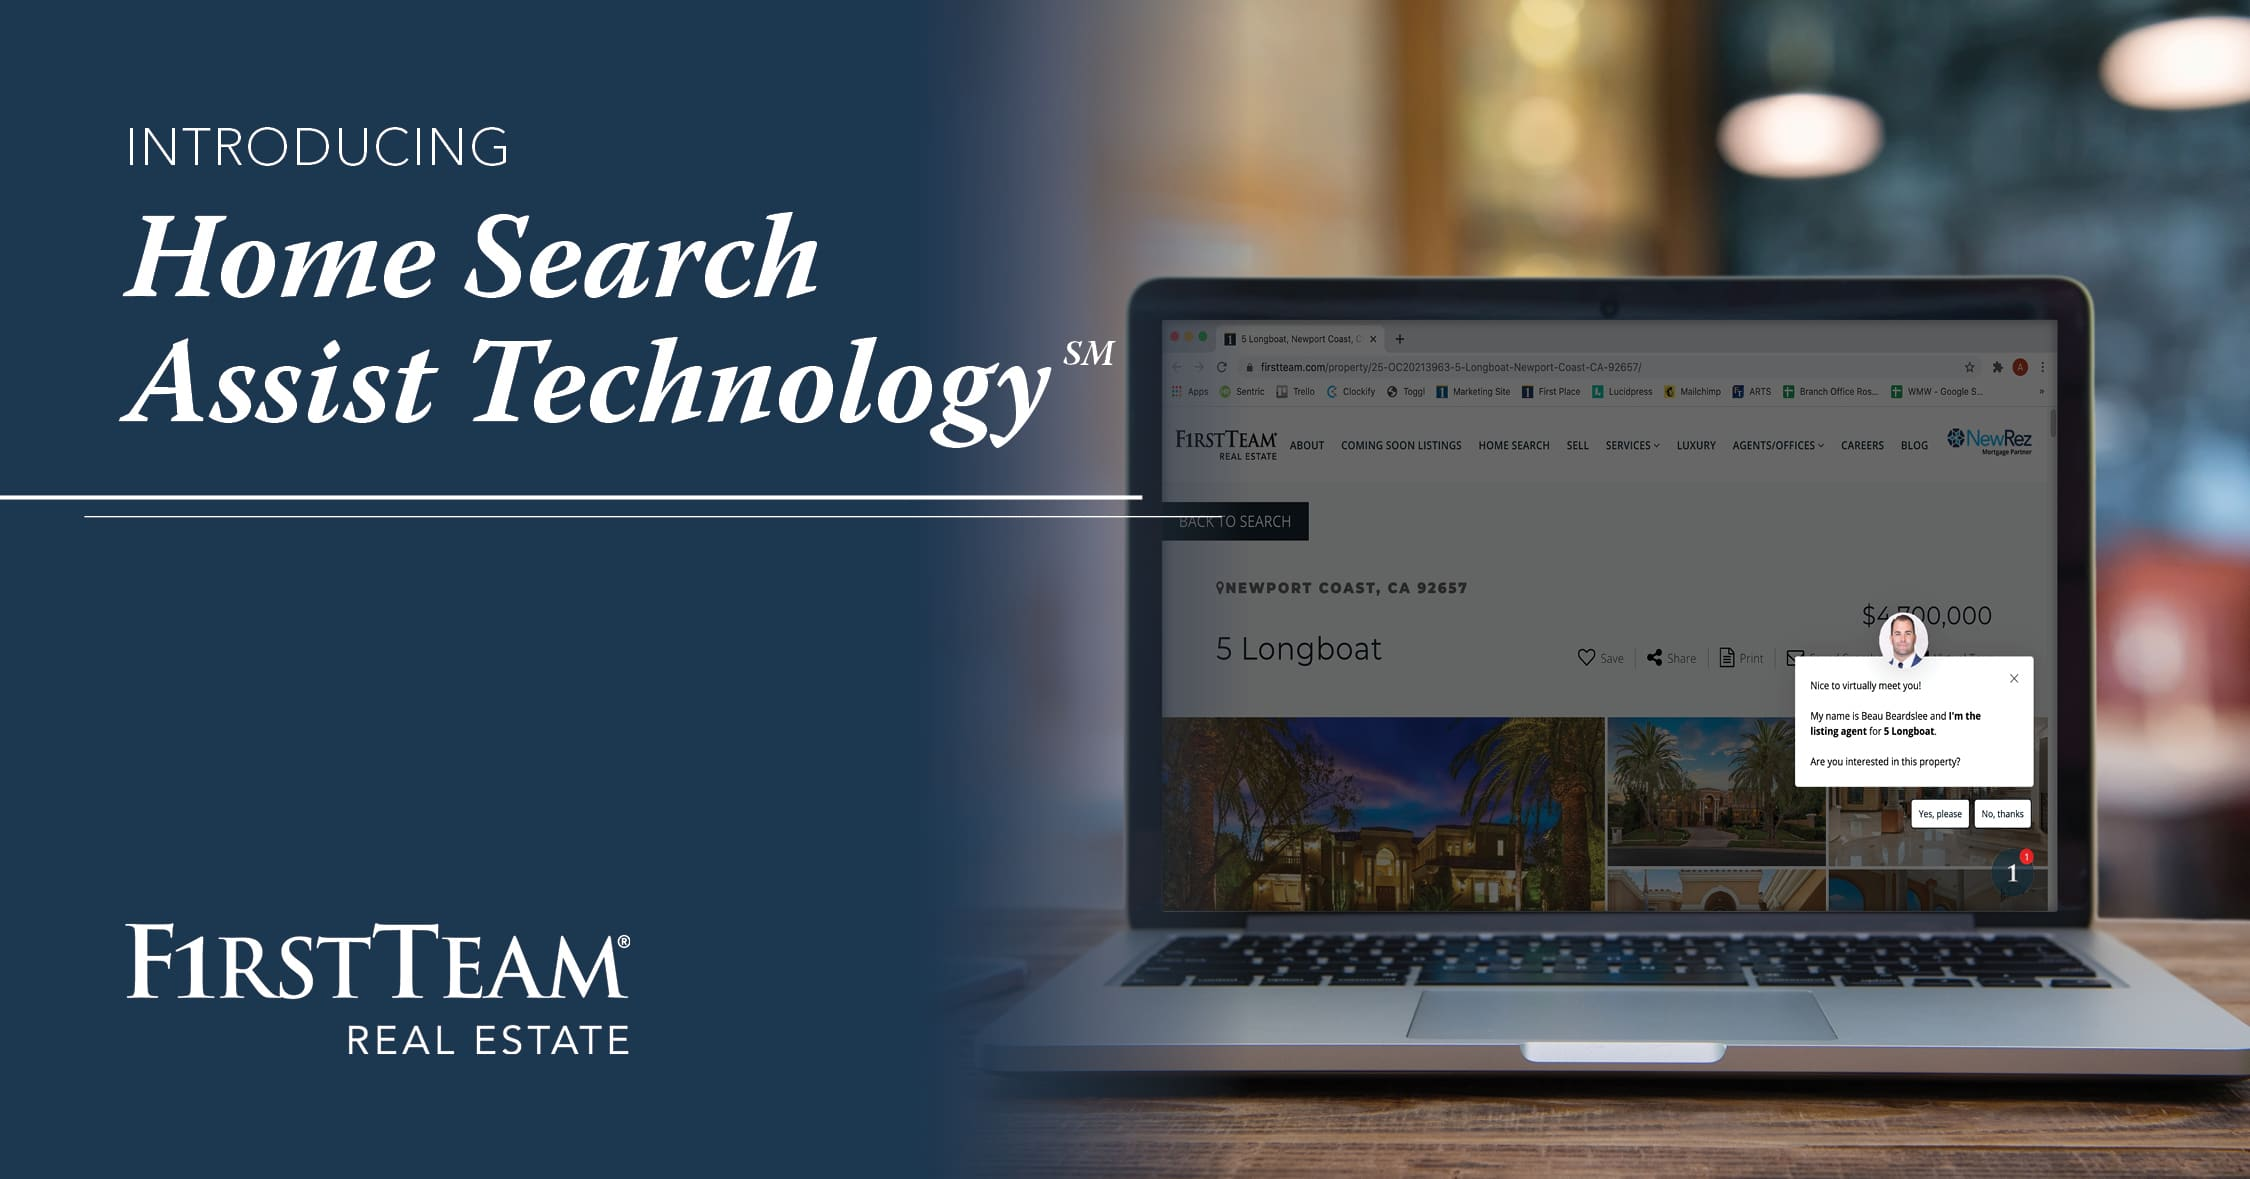 Introducing Home Search Assist Technology with laptop computer showing firstteam.com